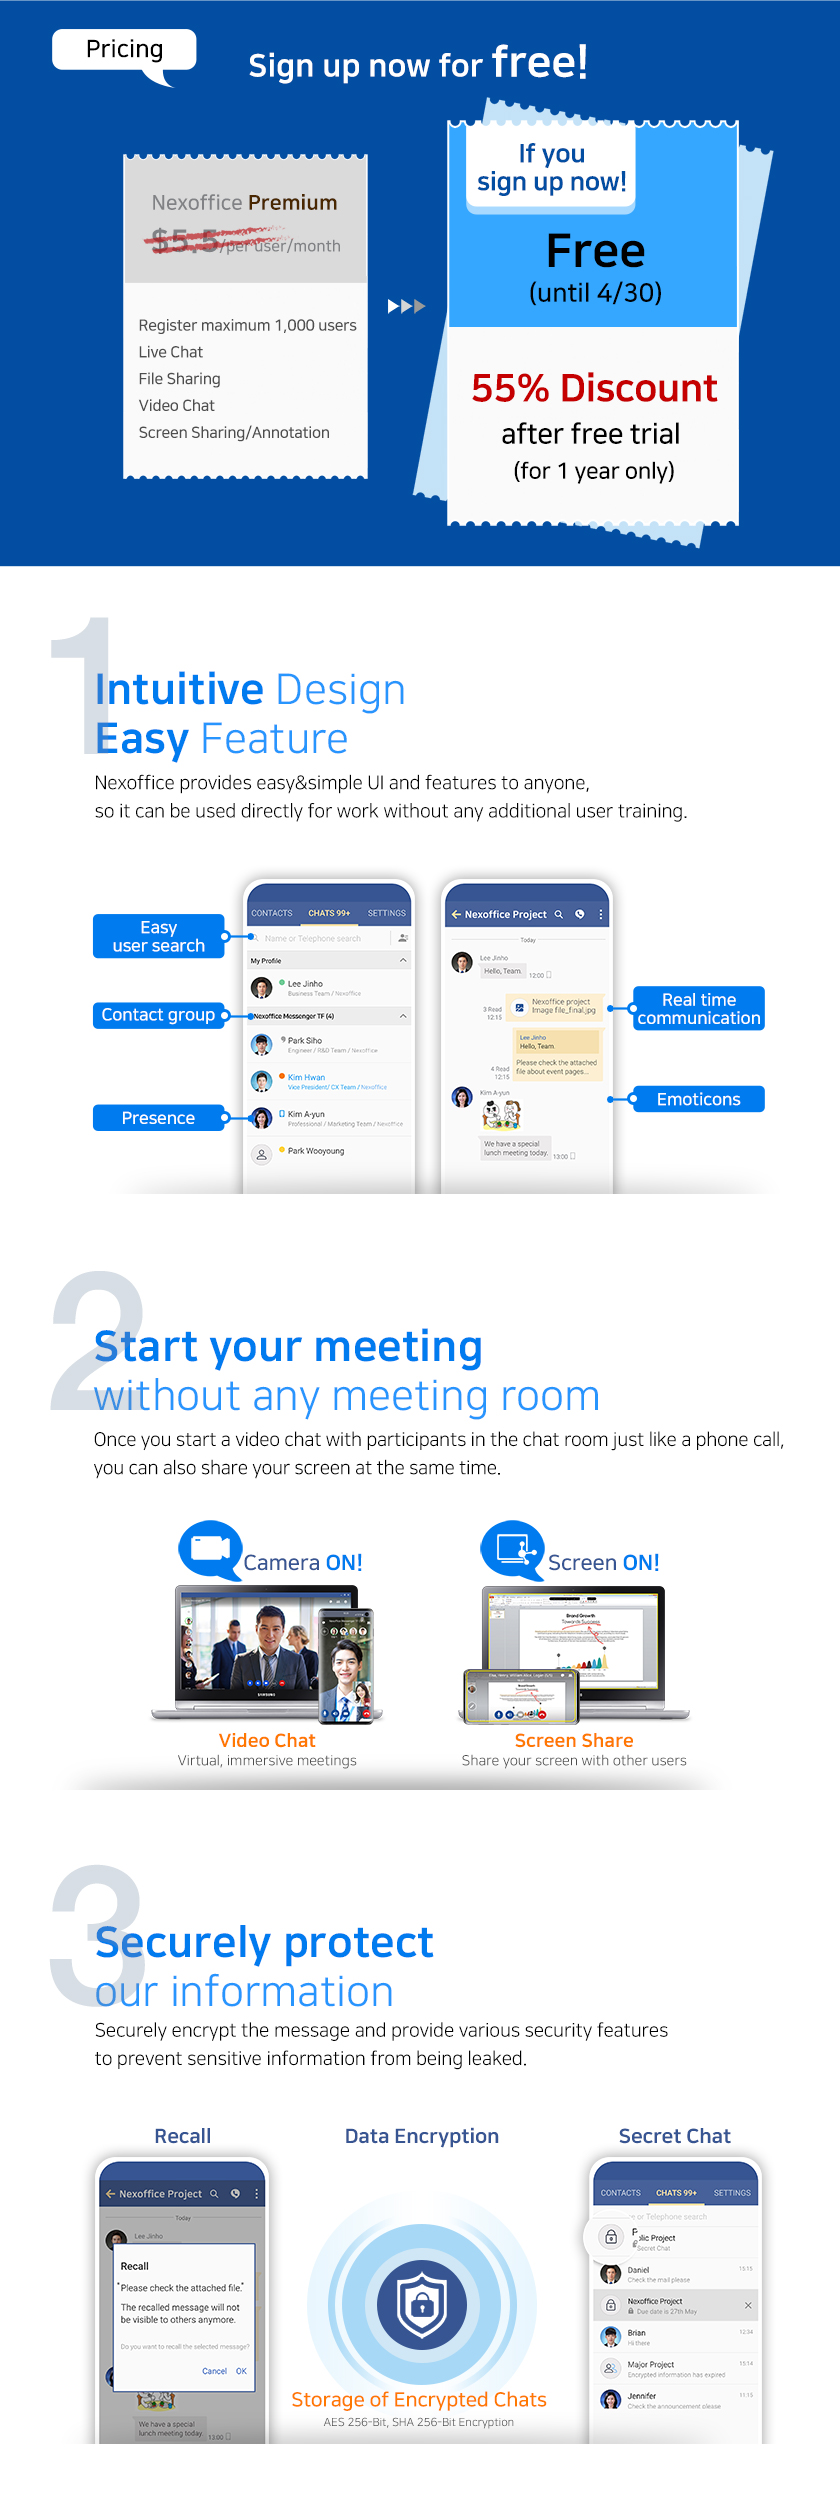 Sign up for free until April 30.  1. Intuitive Design, Easy Feature  Nexoffice provides easy&simple UI and features to anyone,  so it can be used directly for work without any additional user training.  2. Start your meeting without any meeting room. Once you start a video chat with participants in the chat room just like a phone call, you can also share your screen at the same time.  3. Securely Protcet our information  Securely encrypt the message and provide various security features to prevent sensitive information from being leaked.